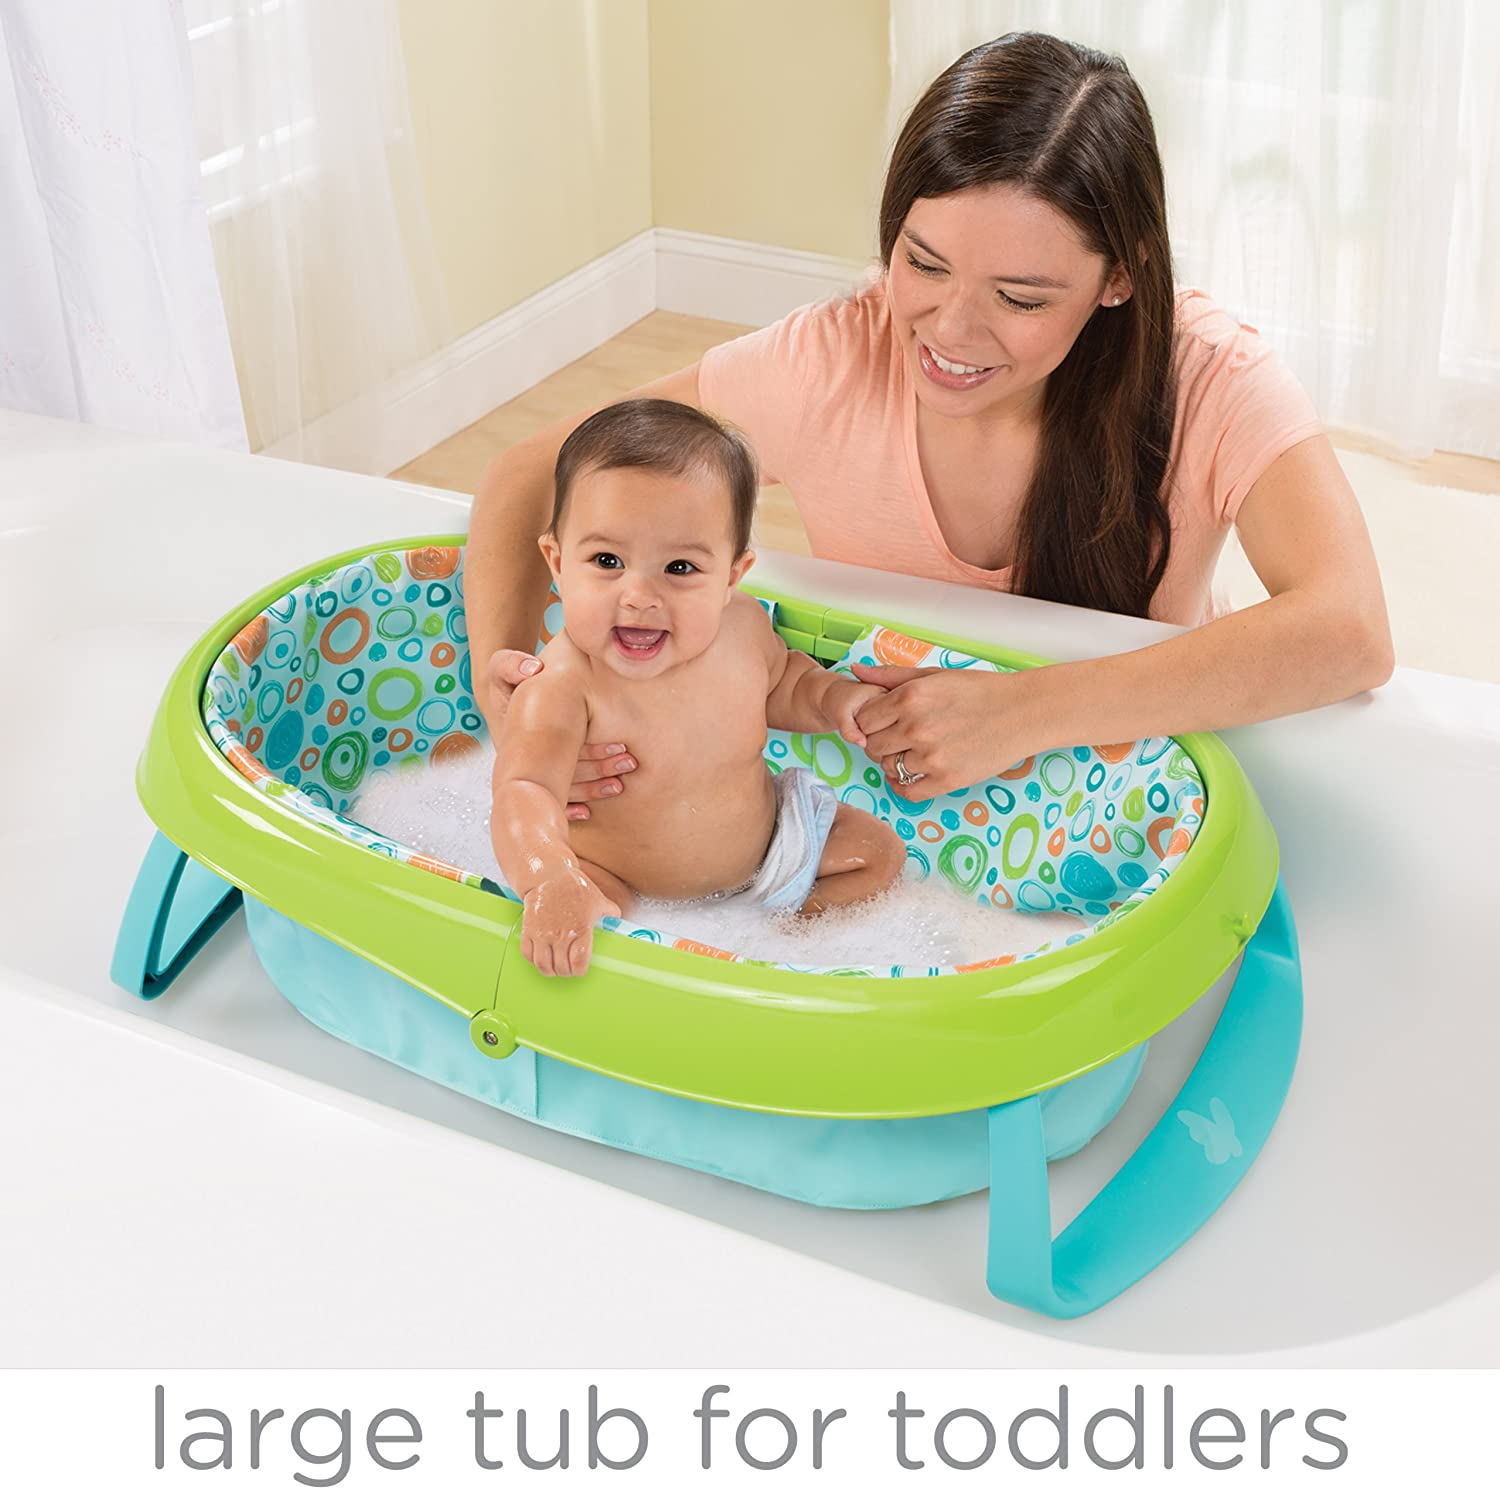 Amazon.com : Summer Infant EasyStore Comfort Tub, Blue : Baby